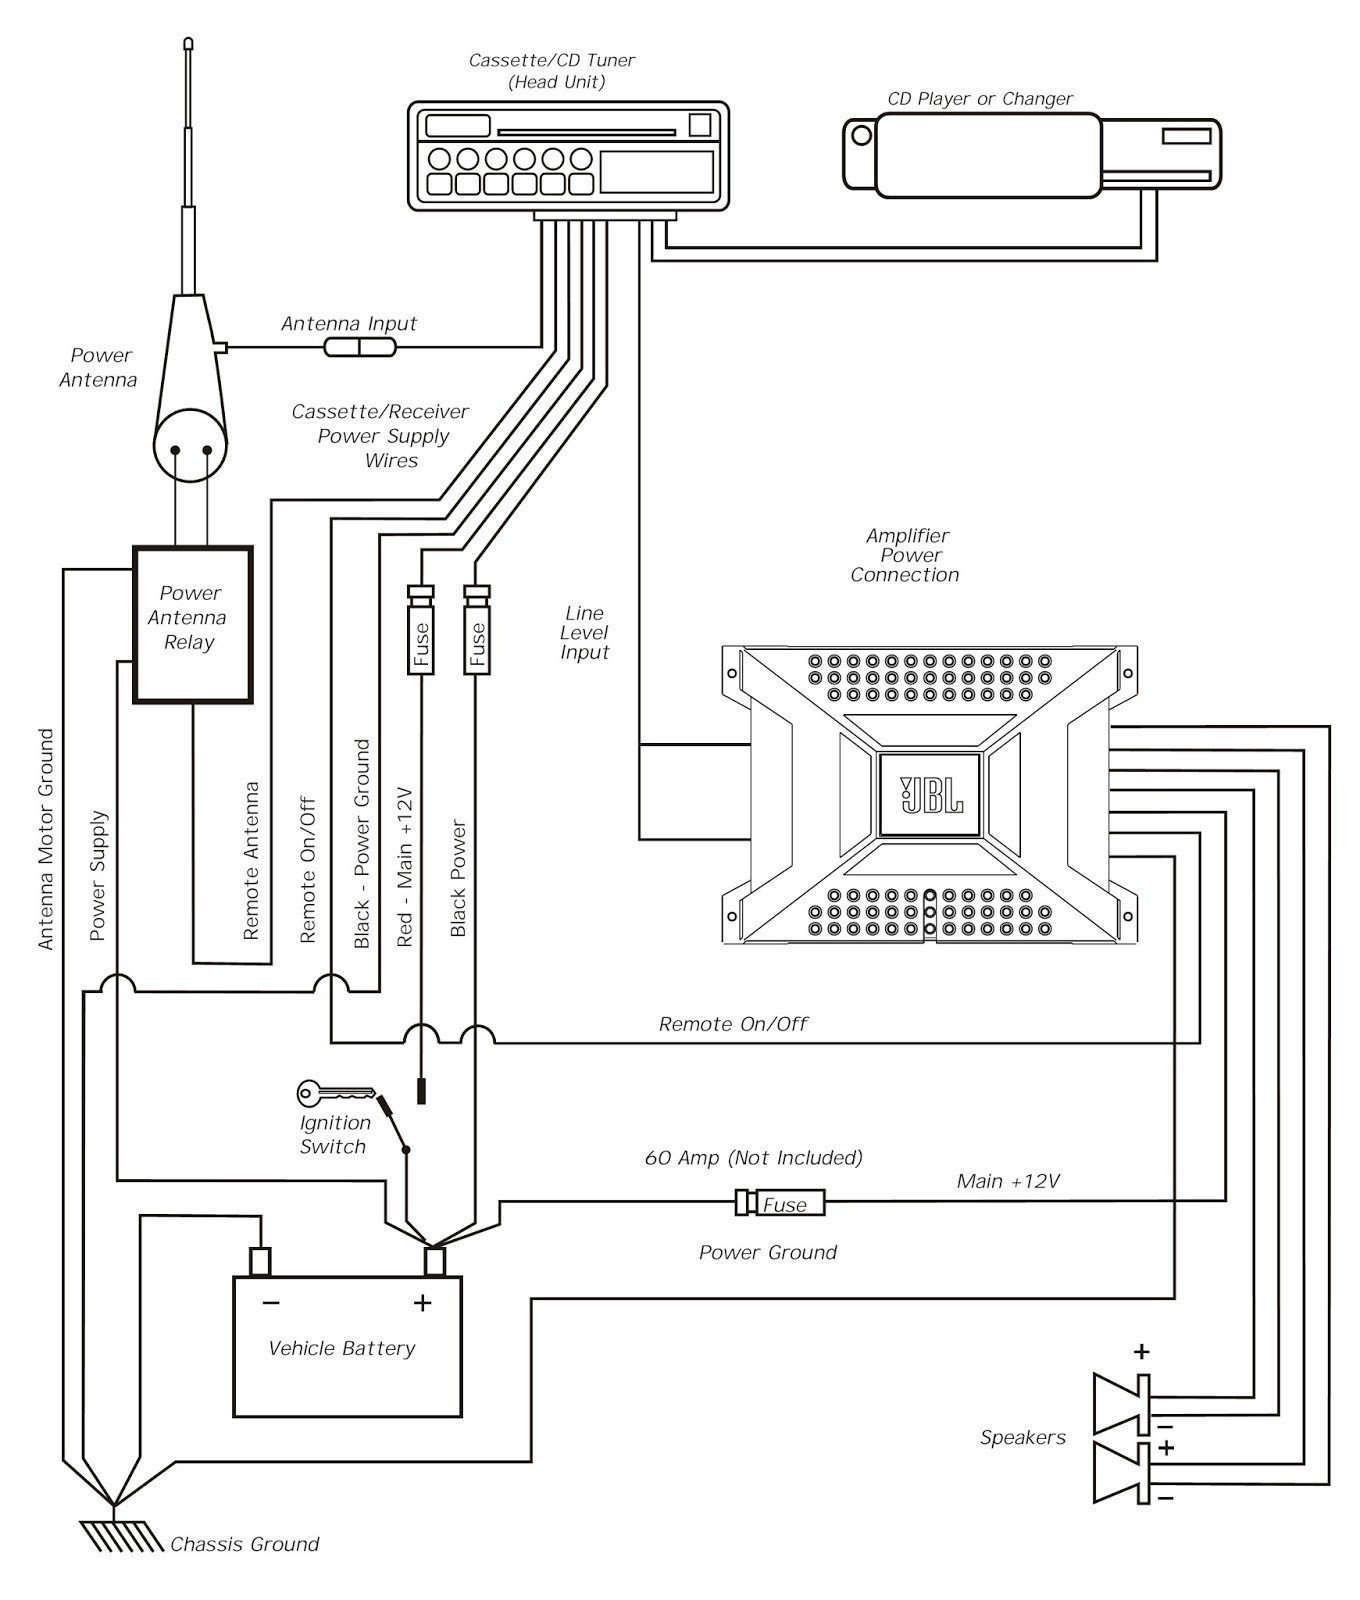 2006 Saturn Ion Engine Diagram 2003 Saturn Vue Stereo Wiring Diagram Shahsramblings Of 2006 Saturn Ion Engine Diagram Saturn 3 0 Engine Diagram Trusted Wiring Diagrams •